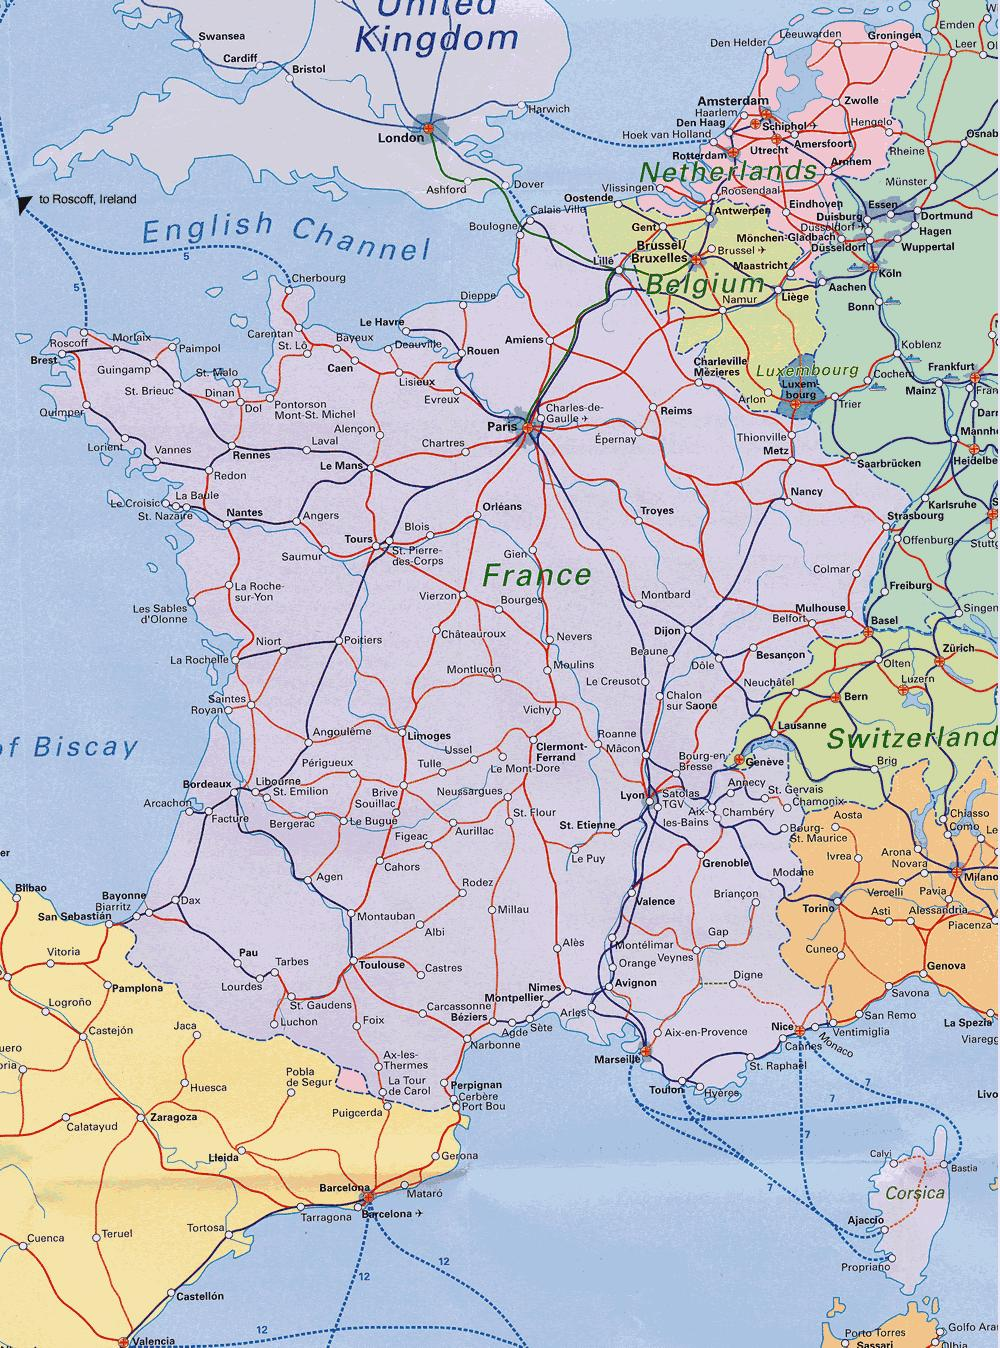 Eurail map France - Euro train map France (Western Europe - Europe)